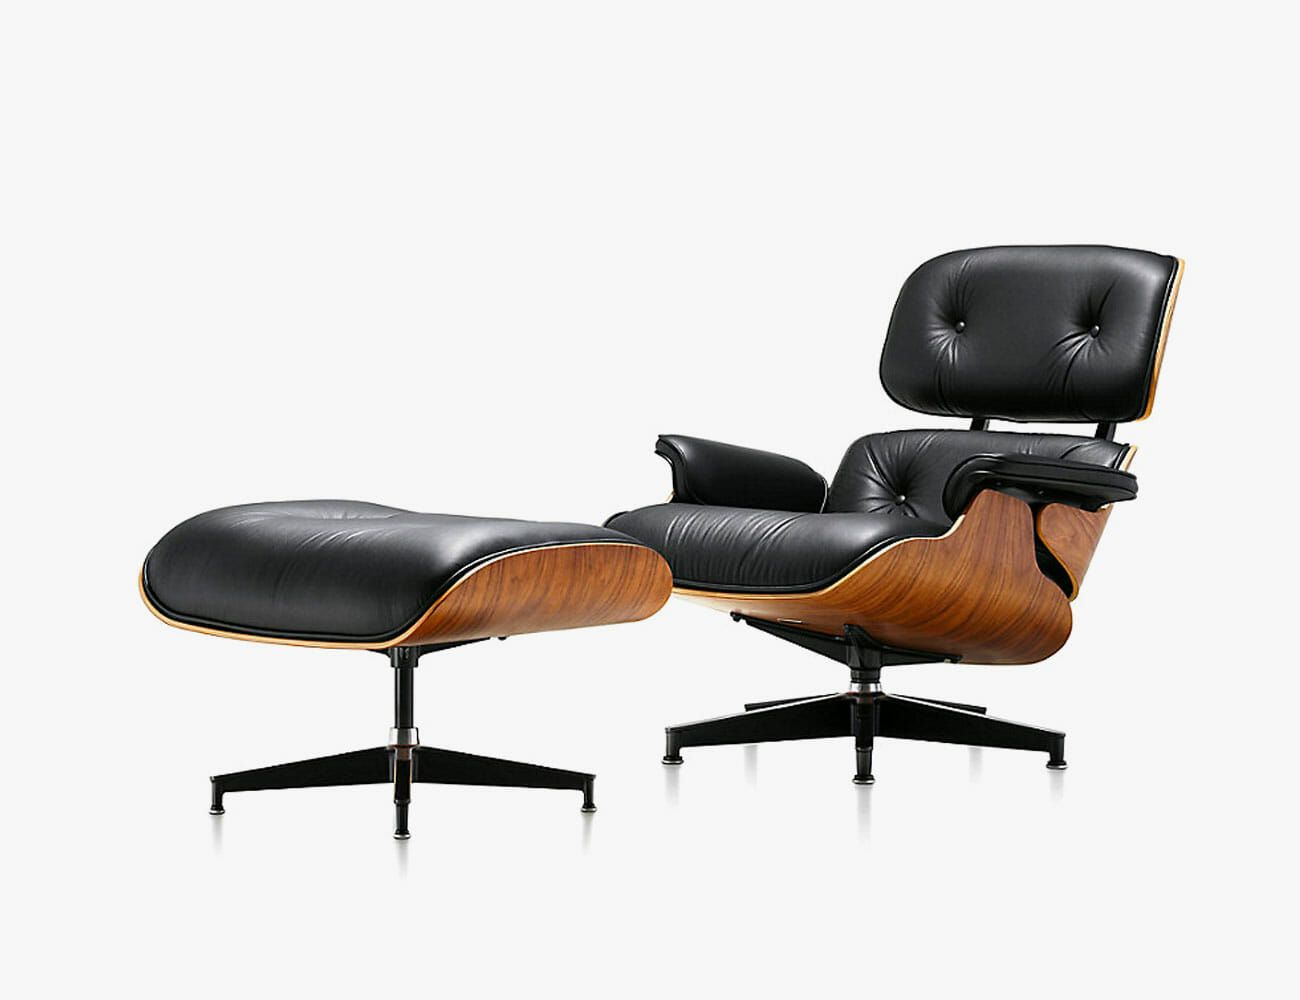 Astonishing The 10 Best Reading Chairs To Buy In 2019 Gear Patrol Andrewgaddart Wooden Chair Designs For Living Room Andrewgaddartcom